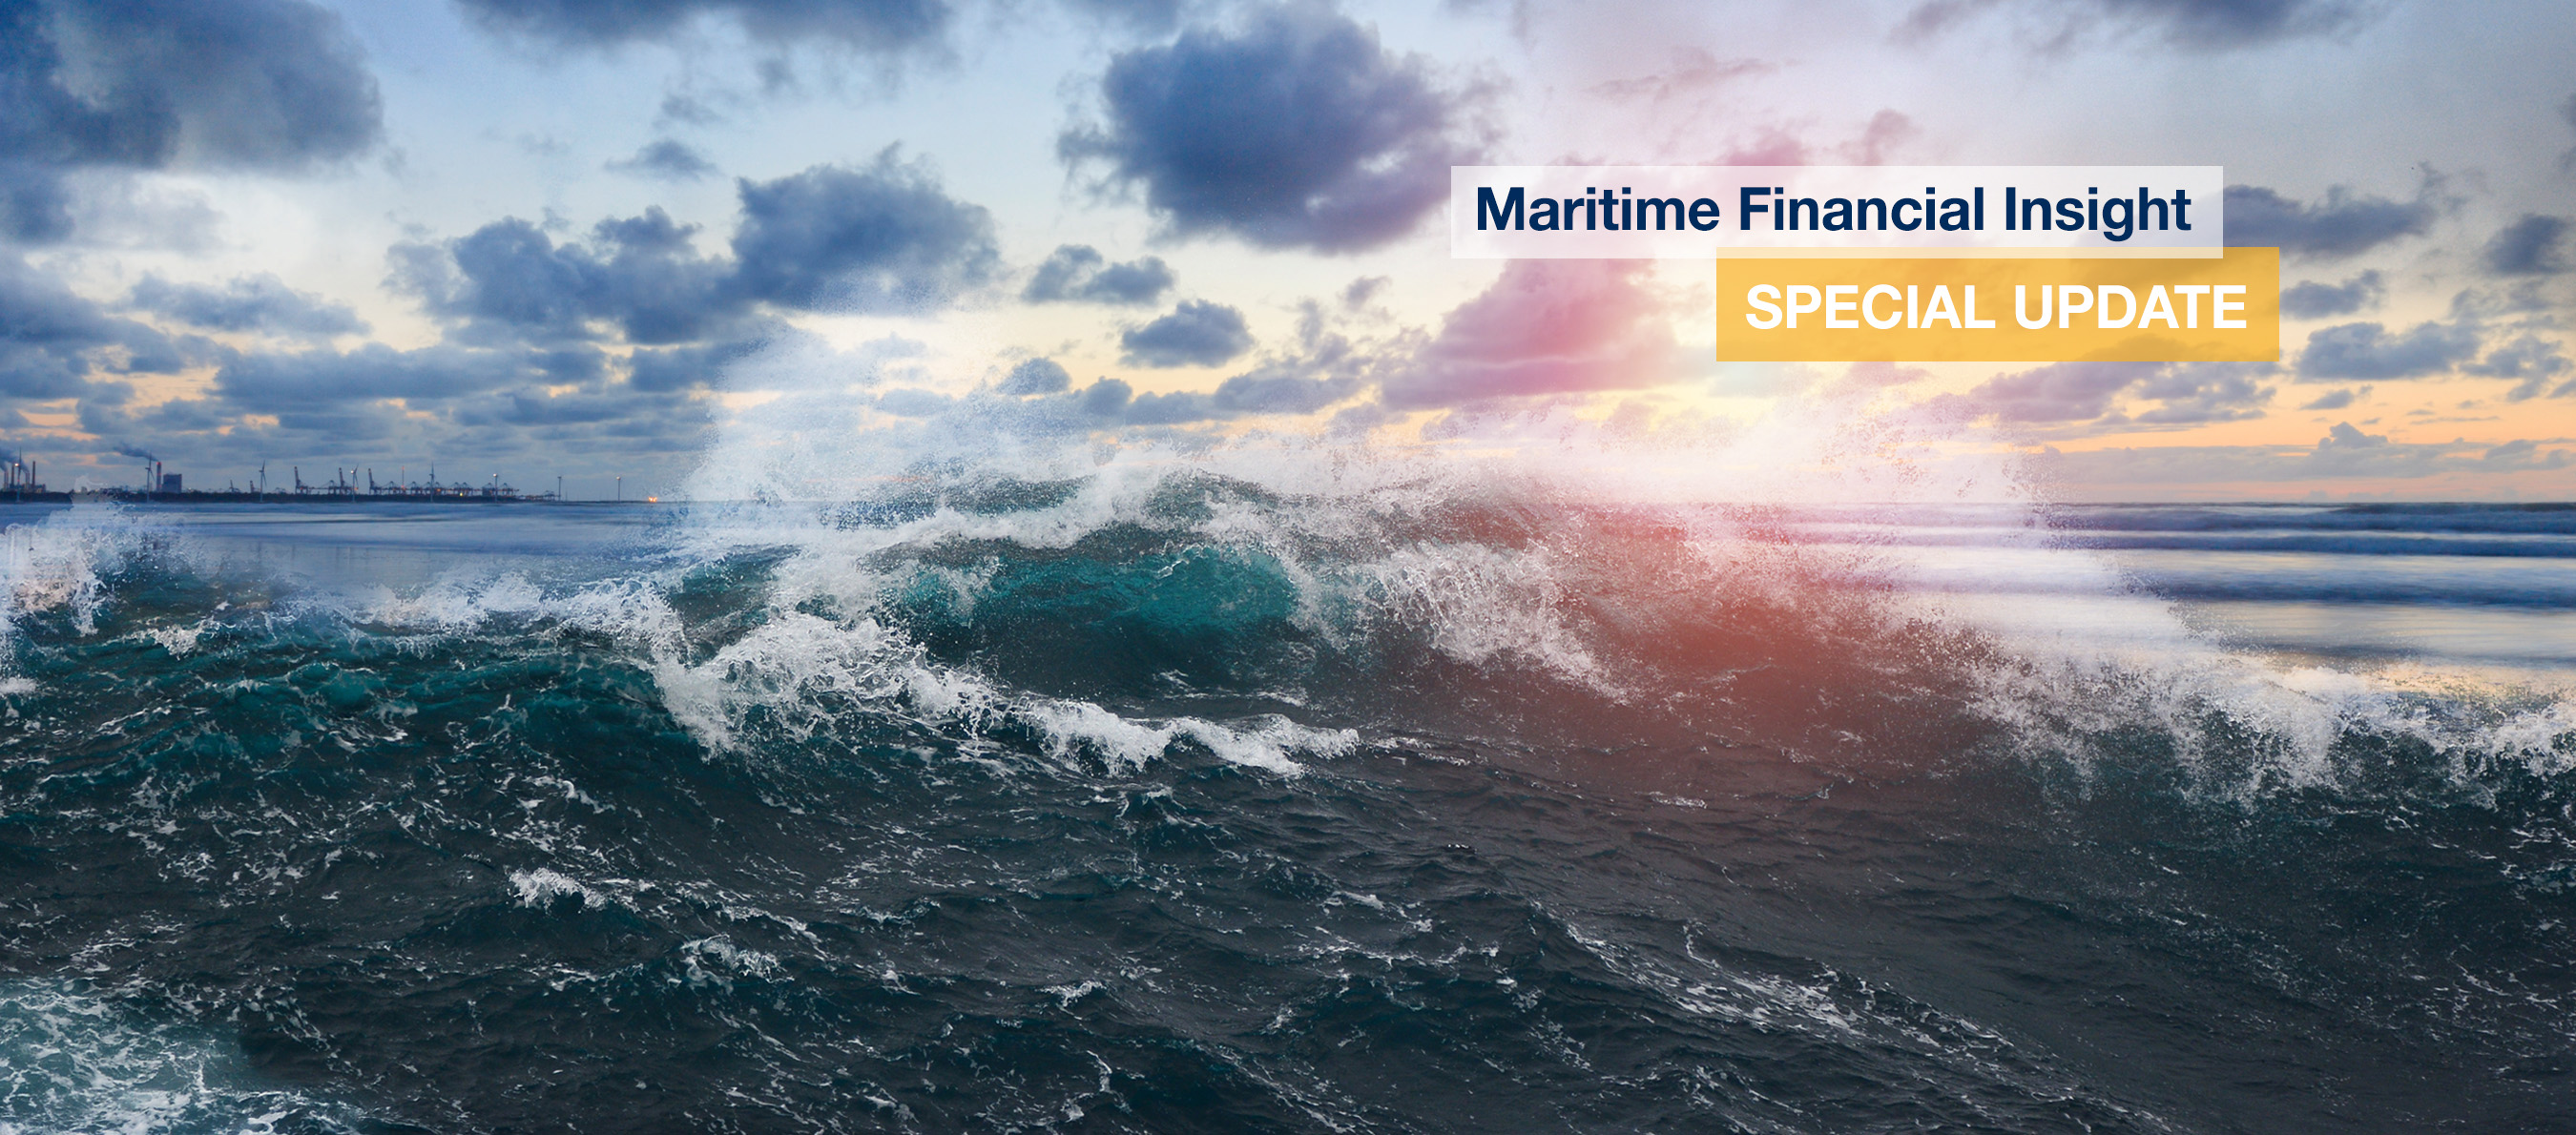 /maritime-research-opinion-browser/maritime-research-opinion-browser/shipping-market-decoding-stock-prices-volatility